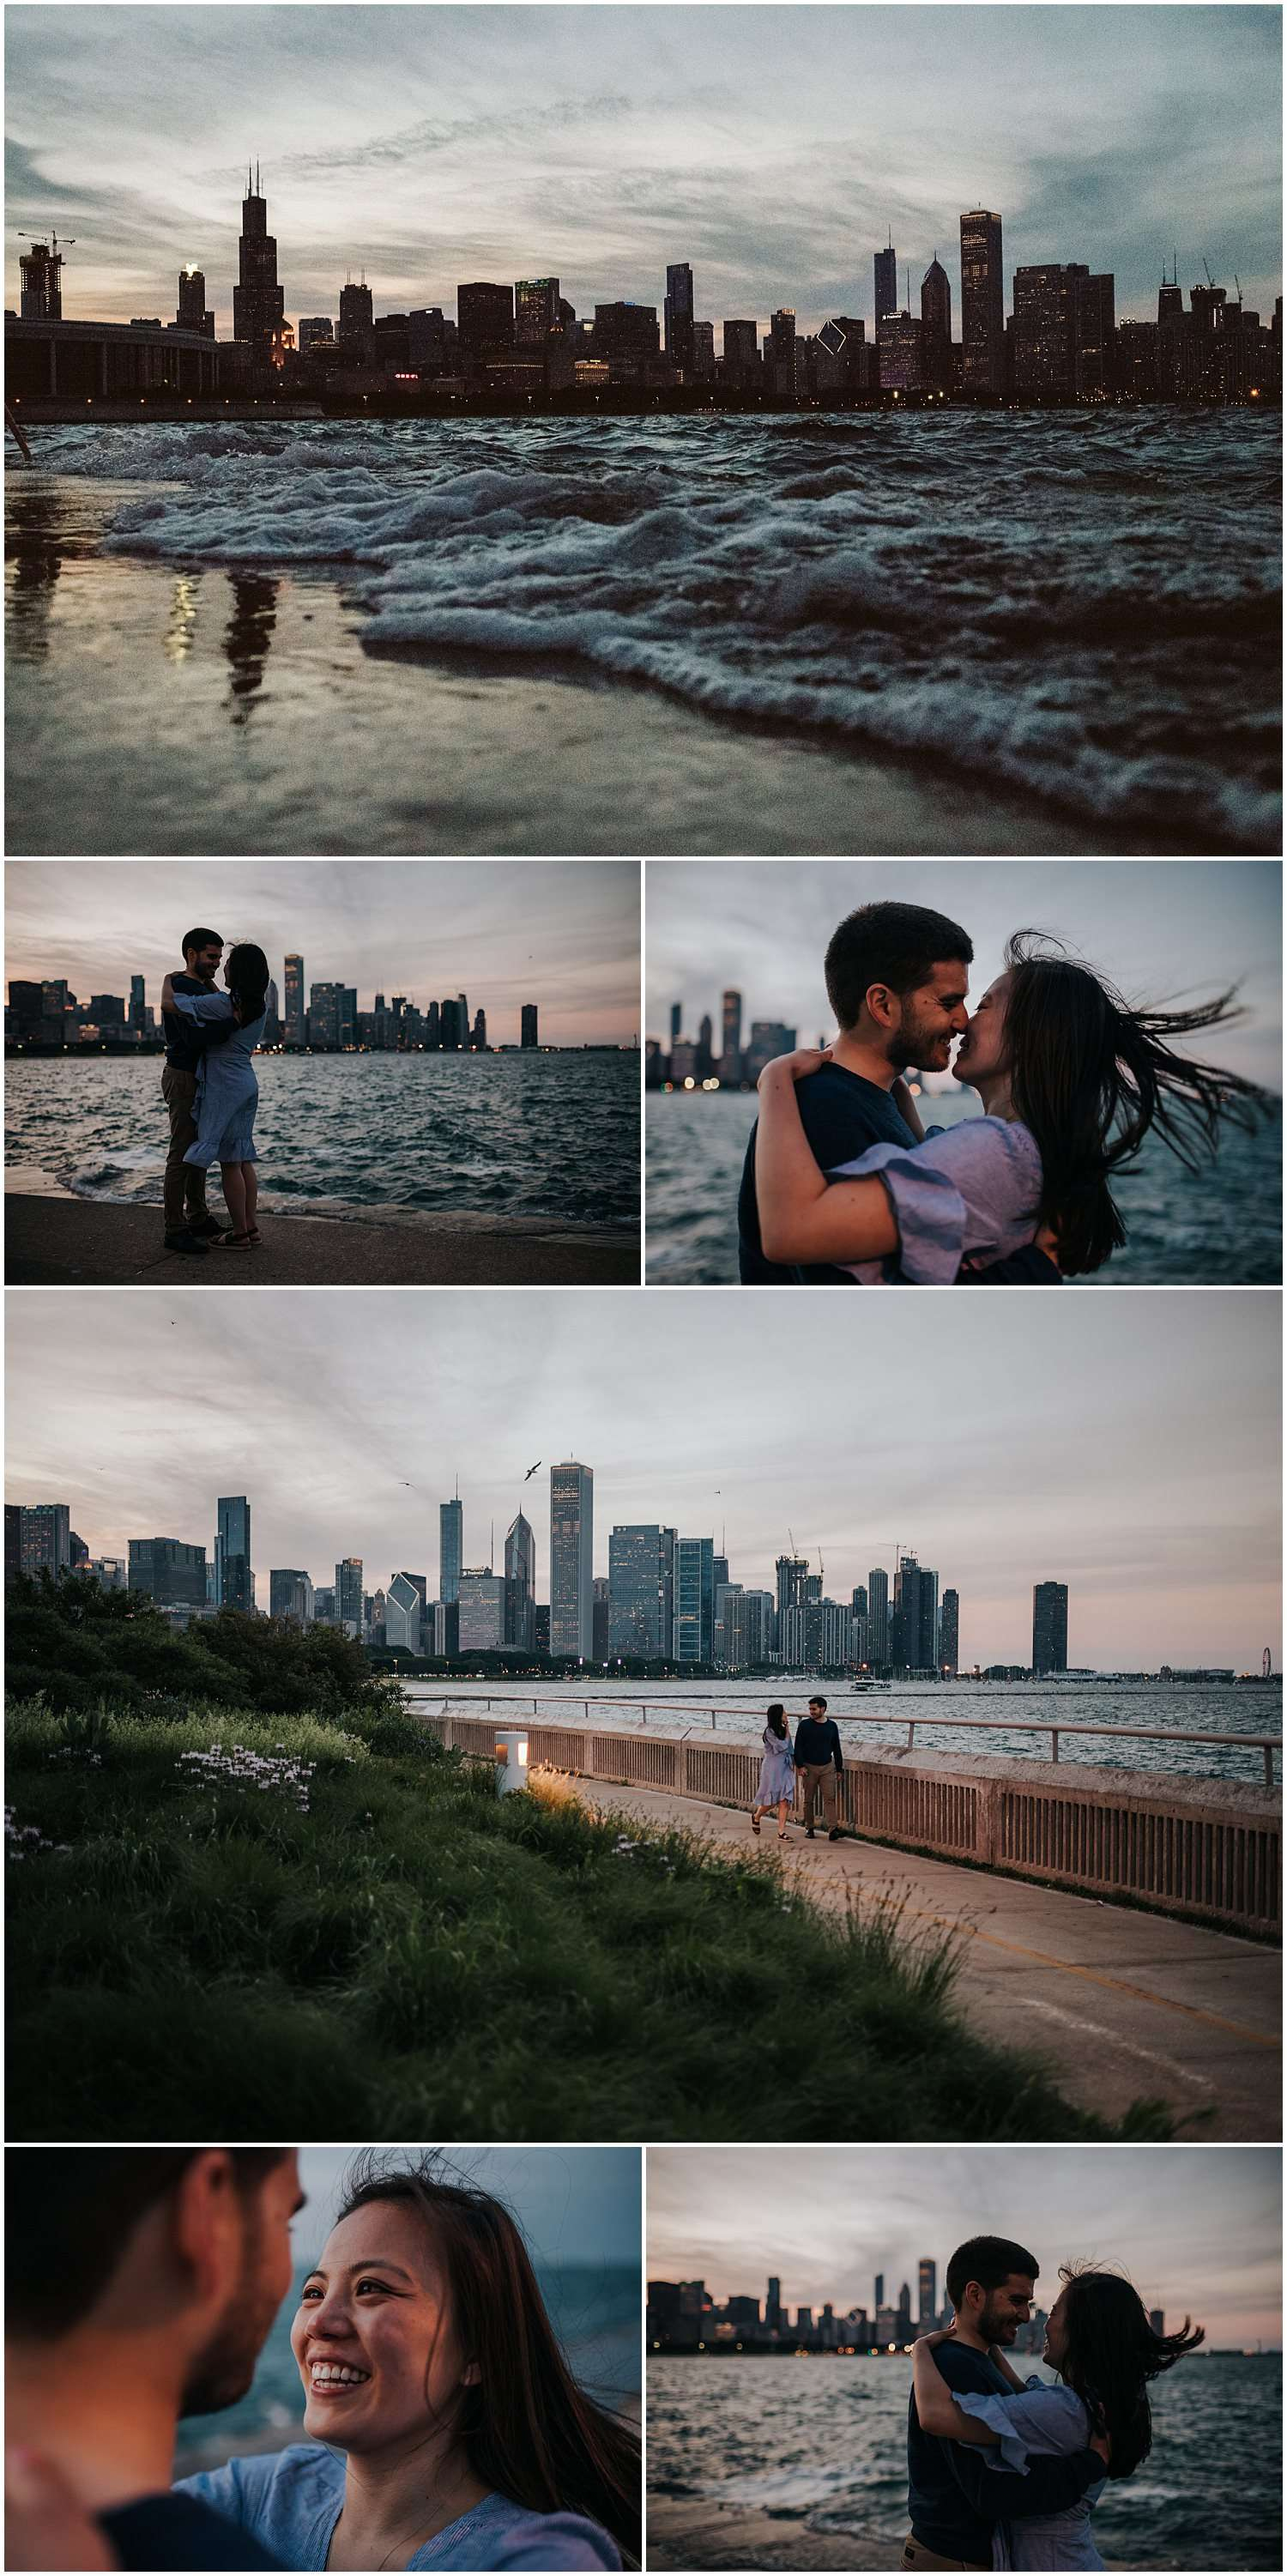 field museum, museum campus, chicago, skyline, city, lake michigan, sunset, engagement, couple, couples, photographer, photography, iron and honey, lifestyle, documentary, candid, unposed, best chicago photographer, best chicago photographers, best chicago engagement photographer, best chicago wedding photographer